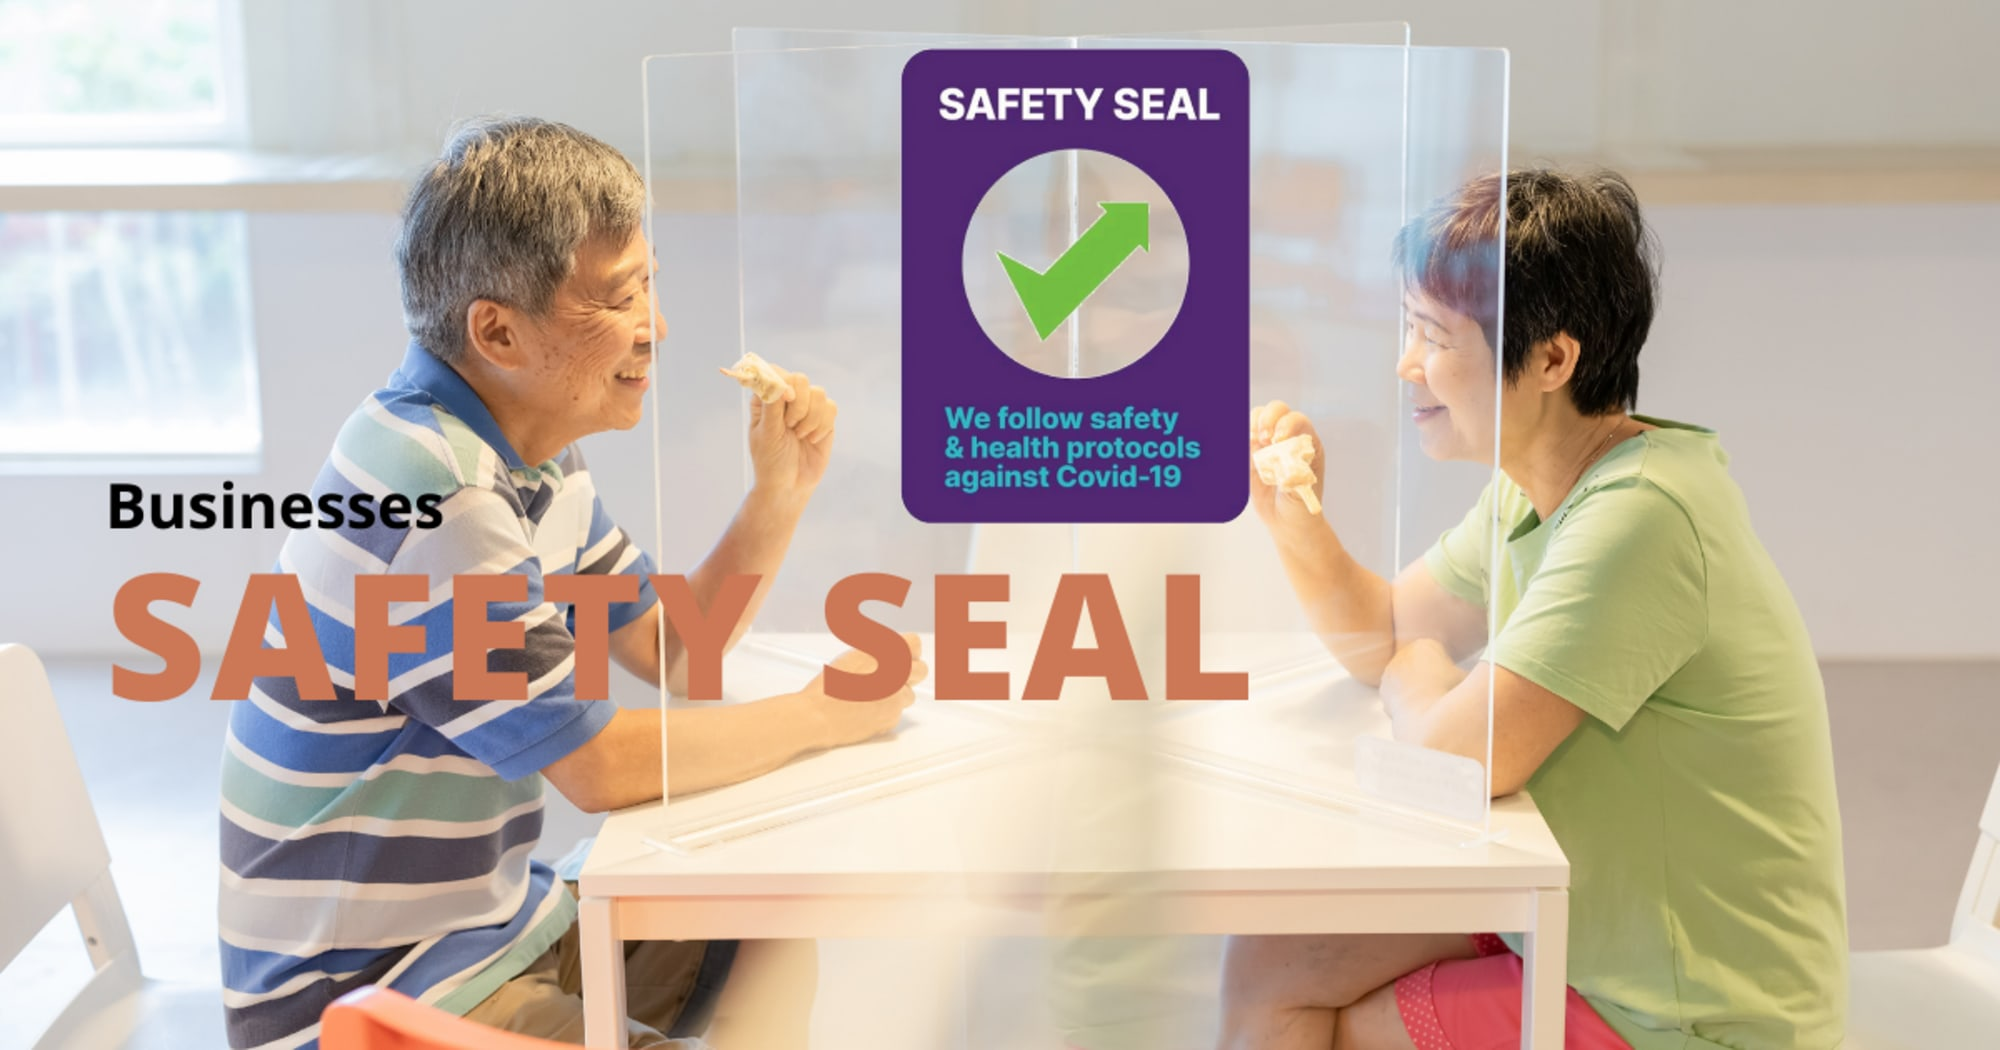 More than 43K businesses now have a Safety Seal as agencies encouraged more business owners to apply for the program